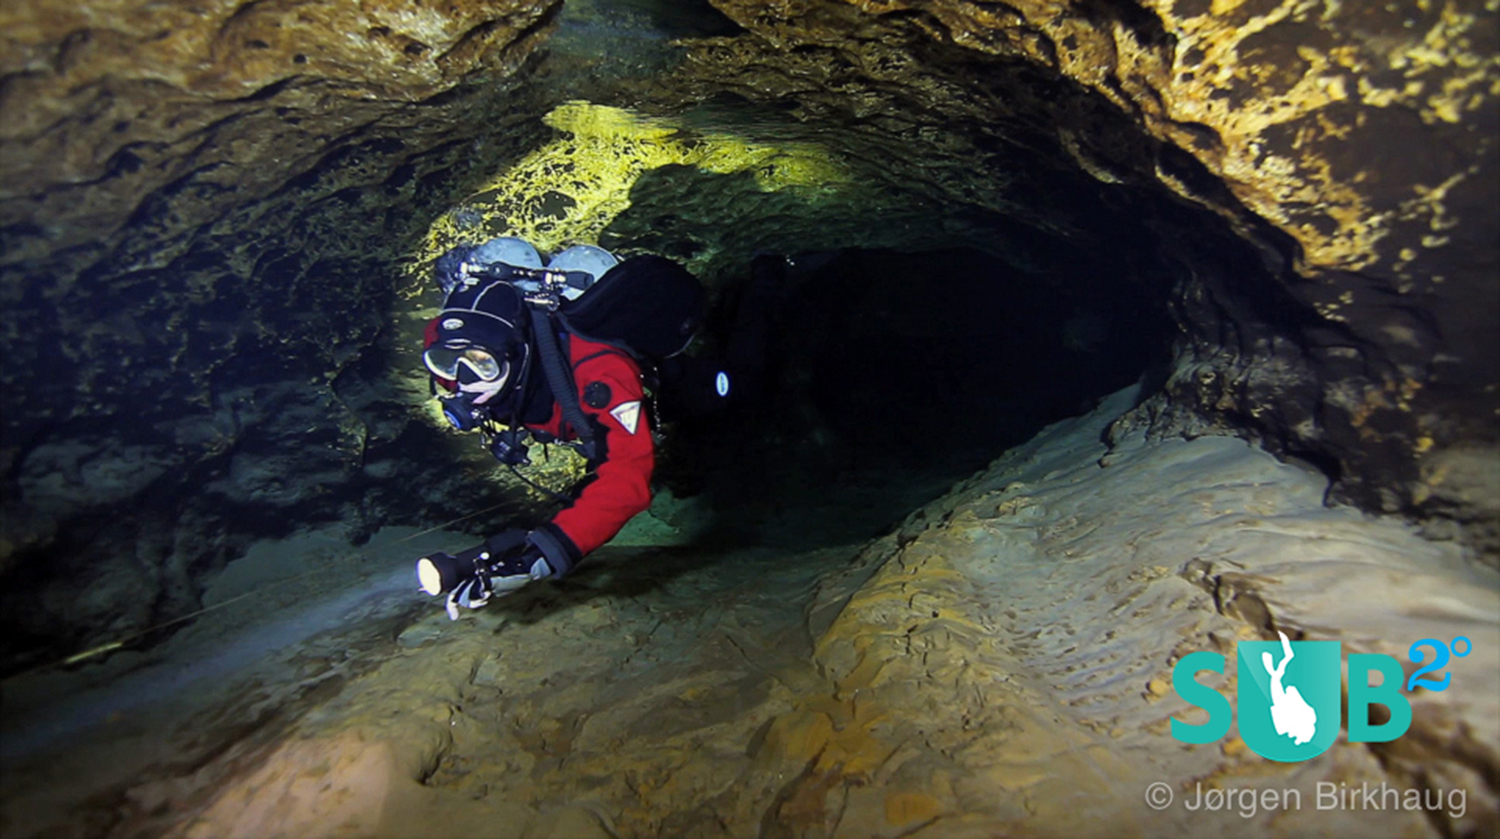 Cave diver in Devil's Eye cave following the double lines.